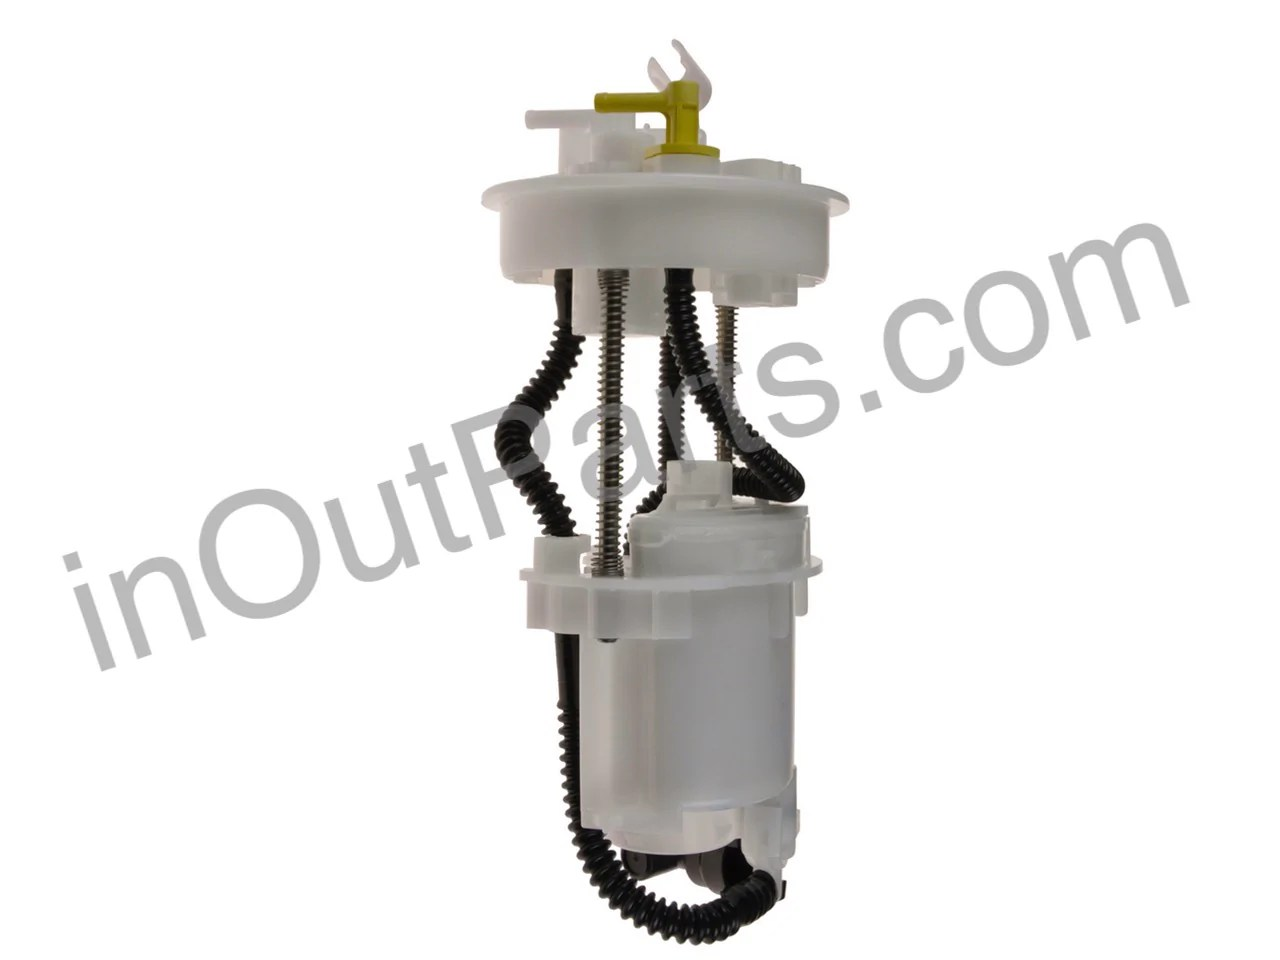 medium resolution of fuel filter fits honda fit jazz 2002 2003 2004 2005 2006 2007 2008 inout parts